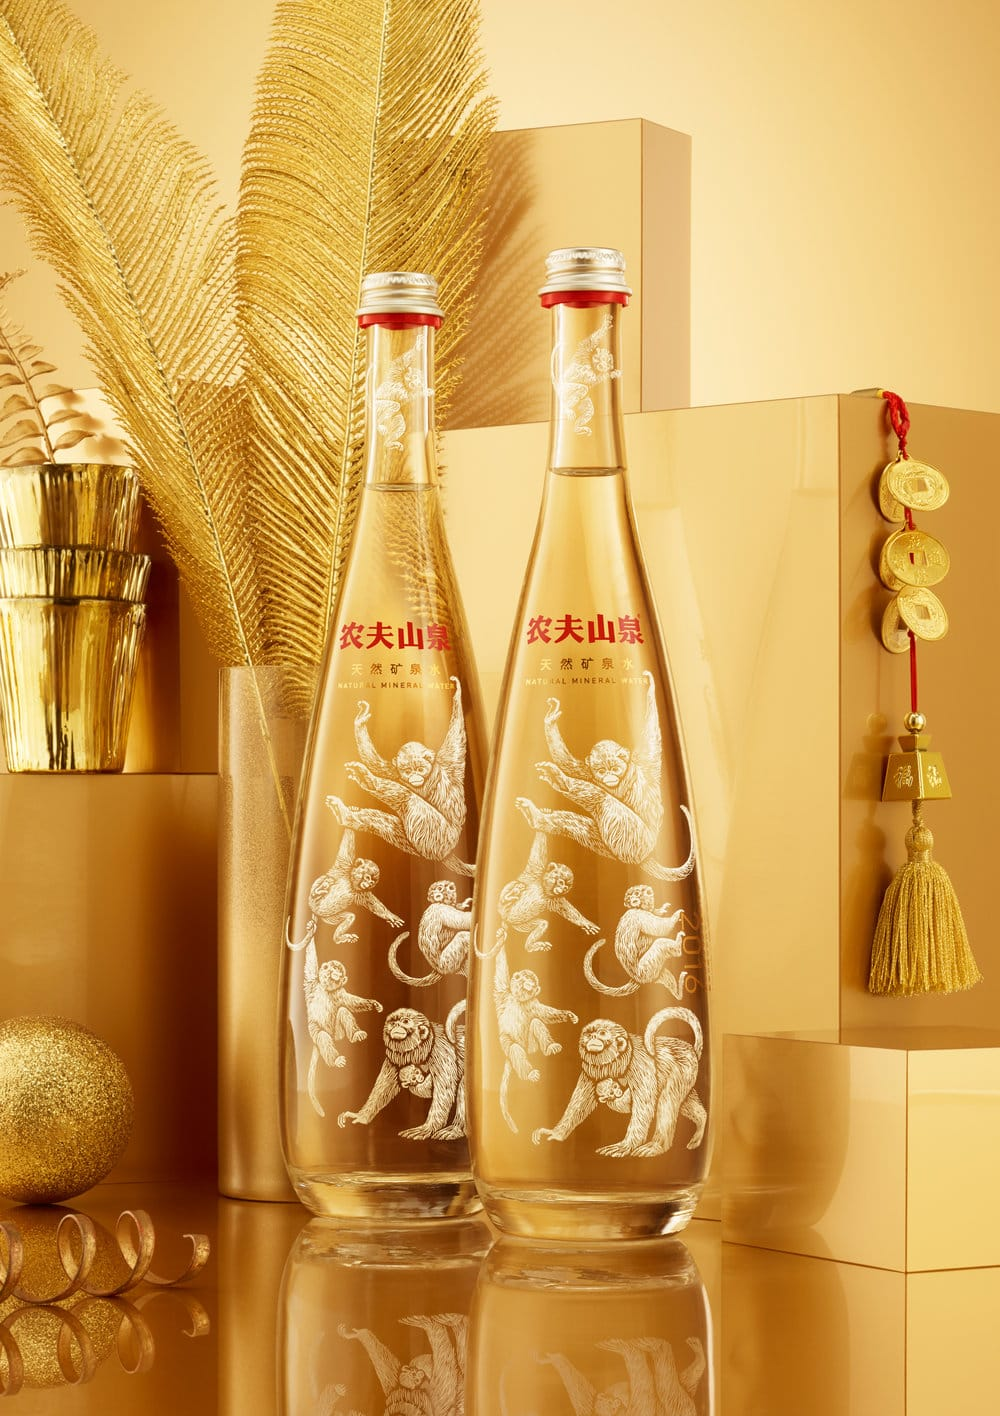 Horse – Nongfu Spring limited edition mineral water